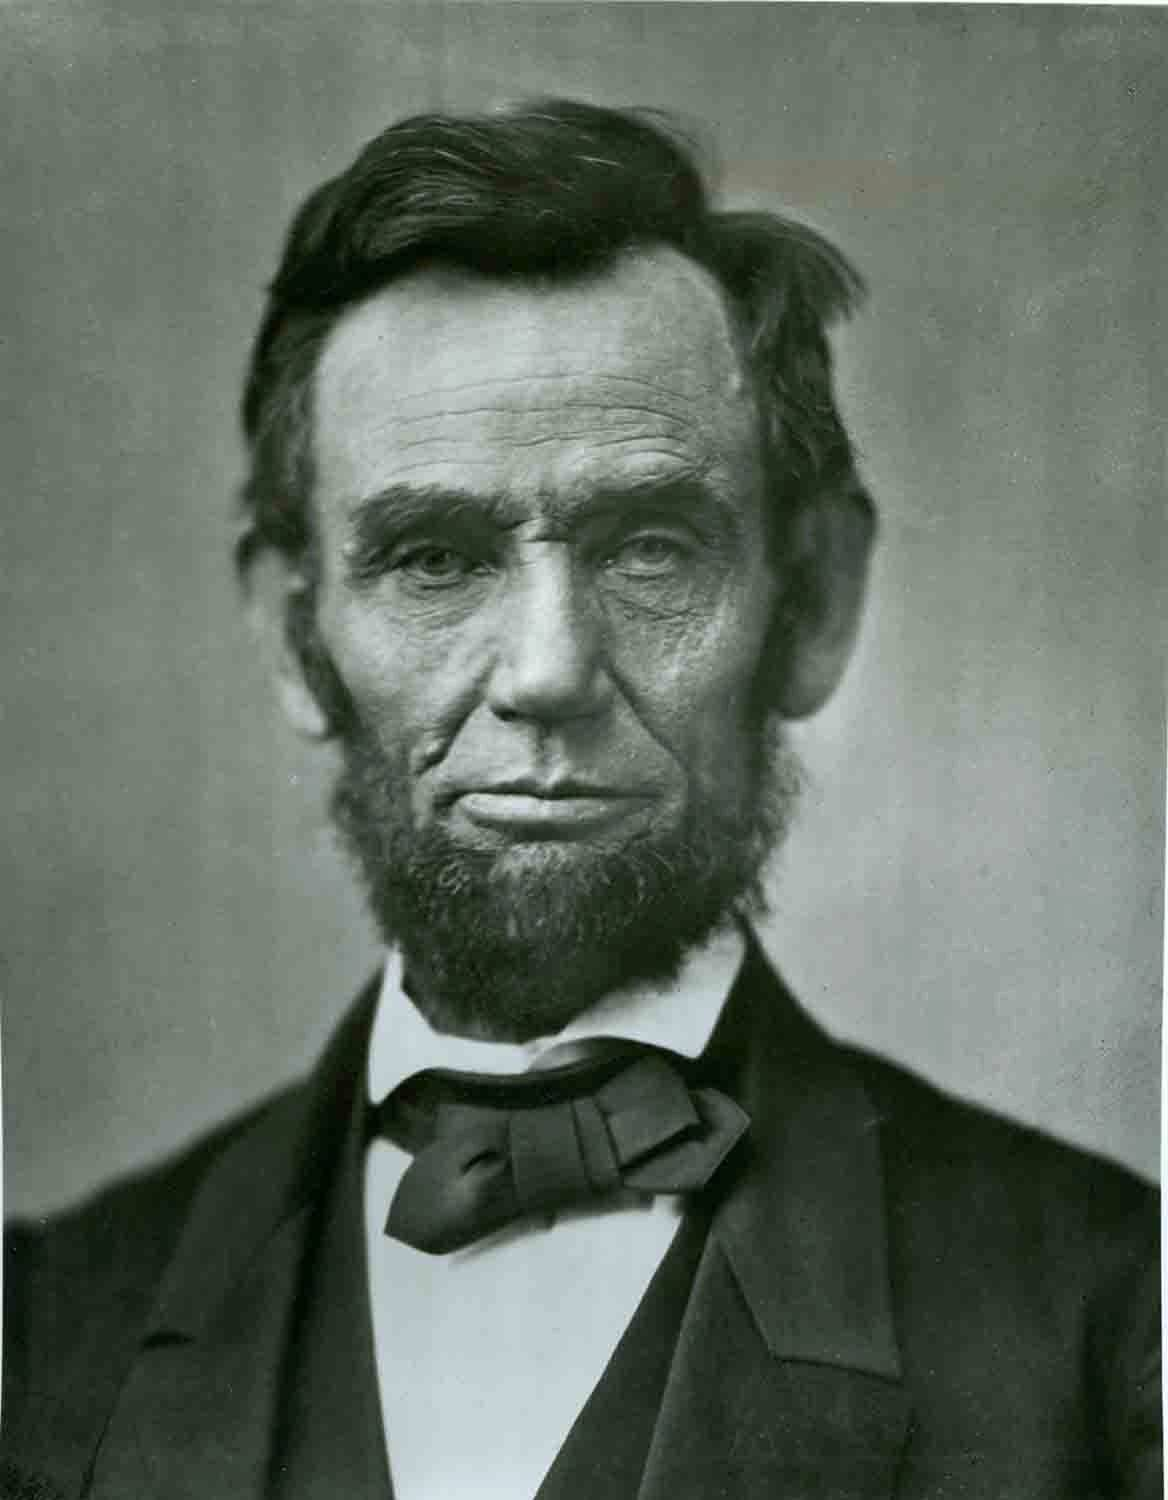 President Abraham Lincoln was known to enjoy opera and the music of his day.